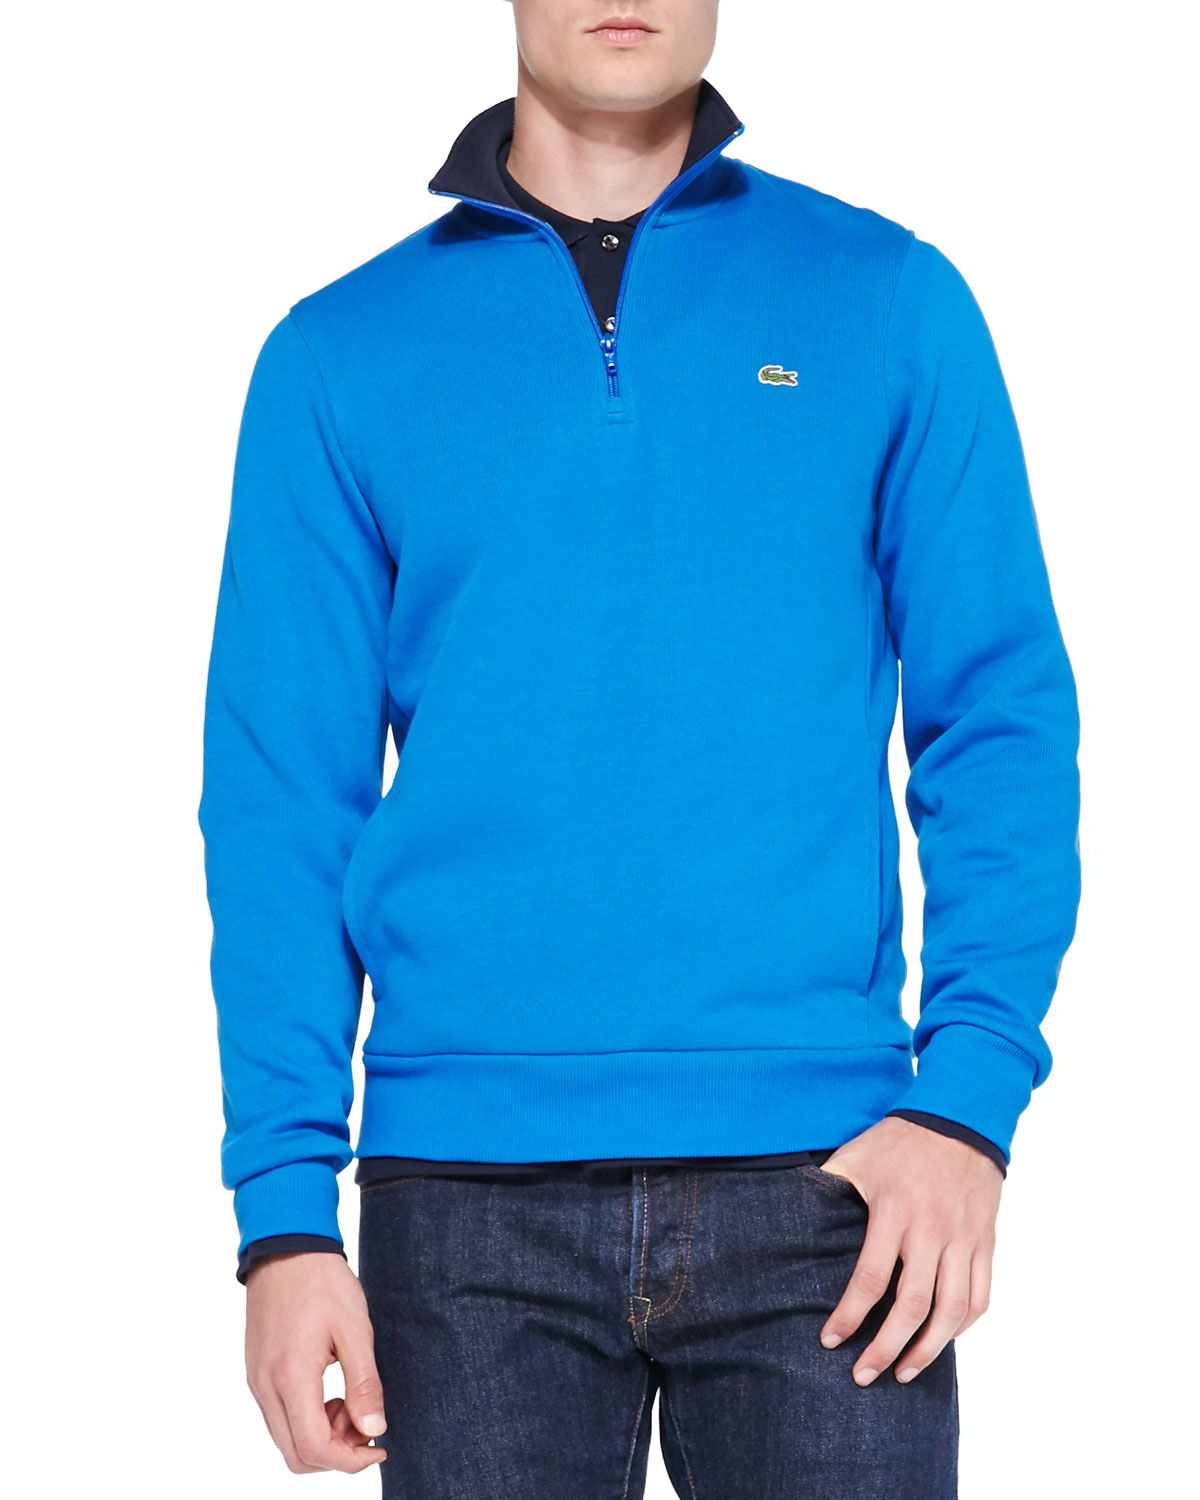 monogram half zip sweatshirt